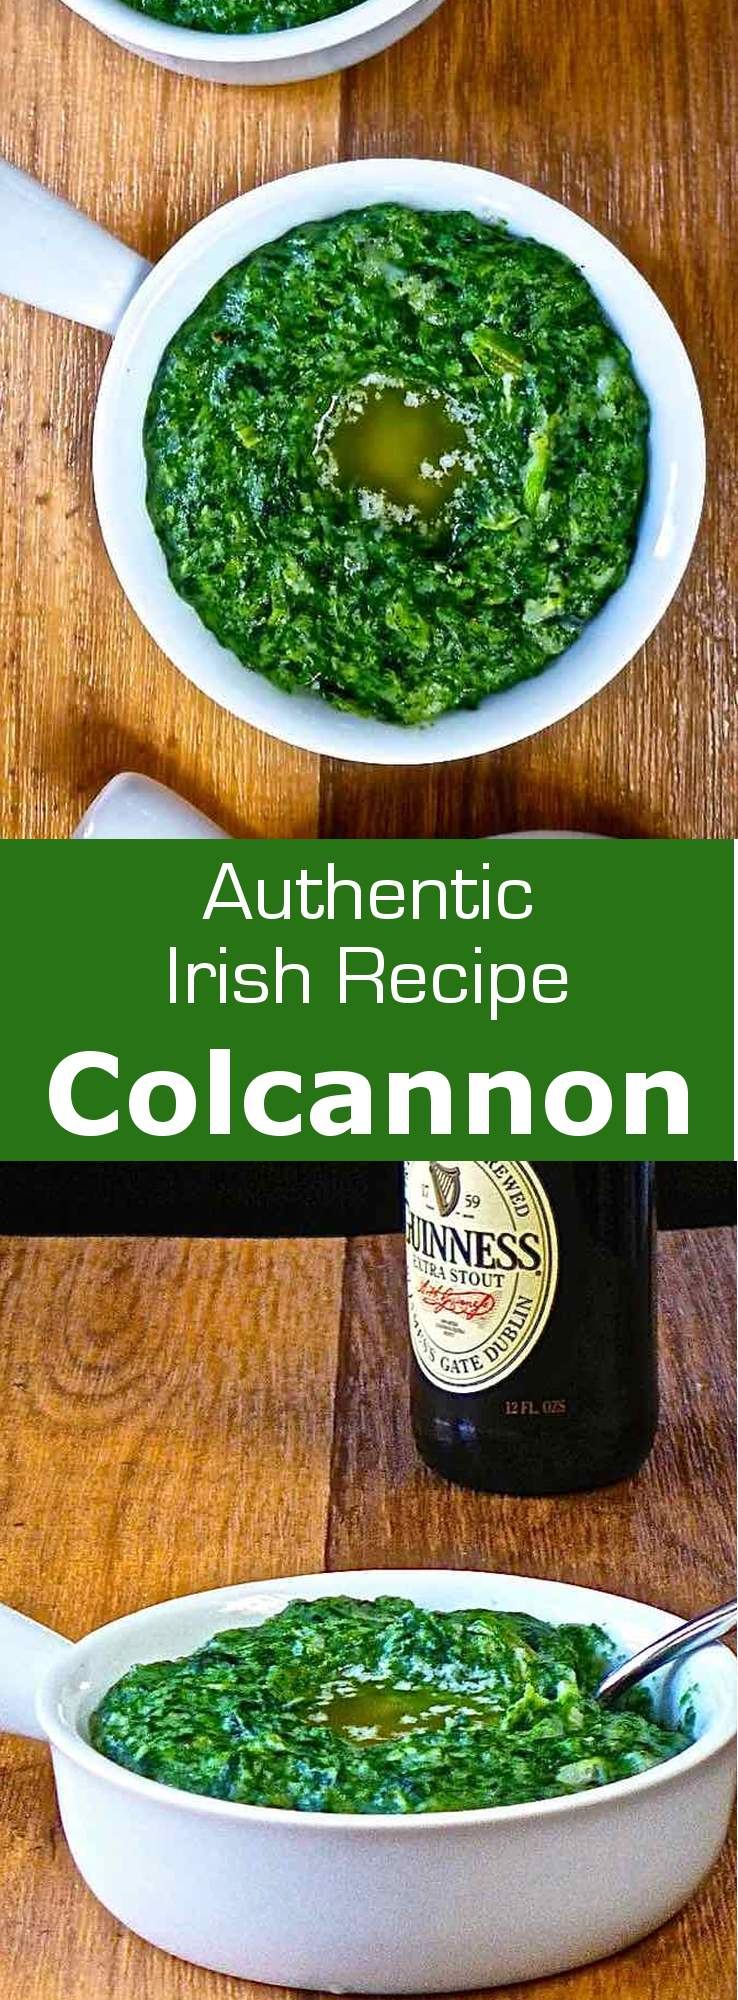 """Colcannon, from Gaelic meaning """"white-headed cabbage"""" is a traditional Irish dish made from potatoes, cabbage or kale, leek or scallion and cream. #halloween #ireland #196flavors"""